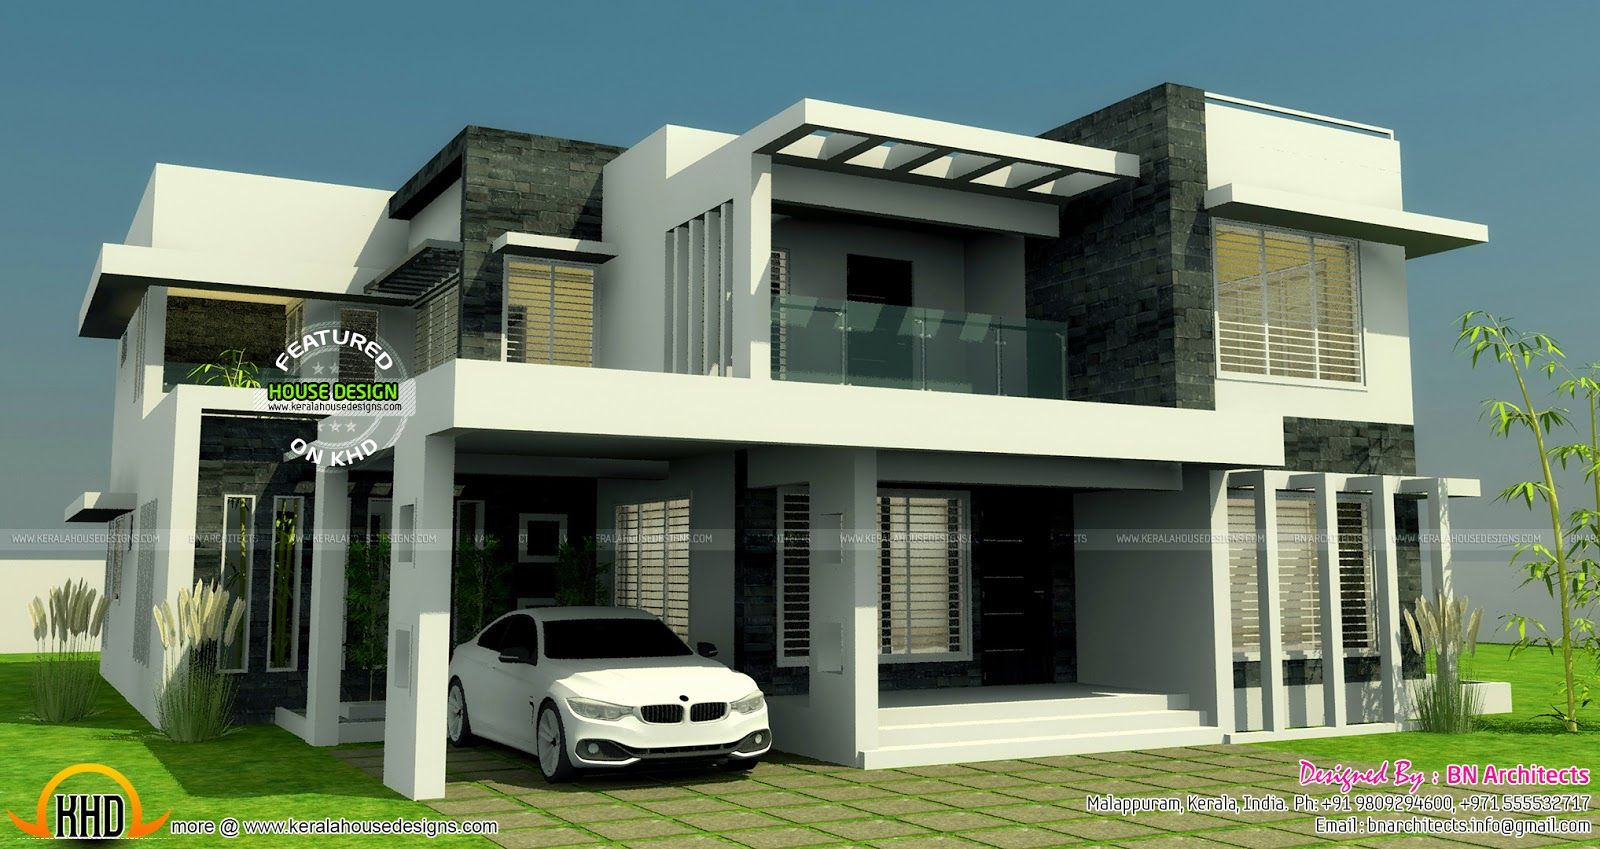 Contemporary Home Designs At Malappuram Part - 47: Free Floor Plan, Elevation And Interior Designs Provided By BN Architects,  Malappuram, Kerala